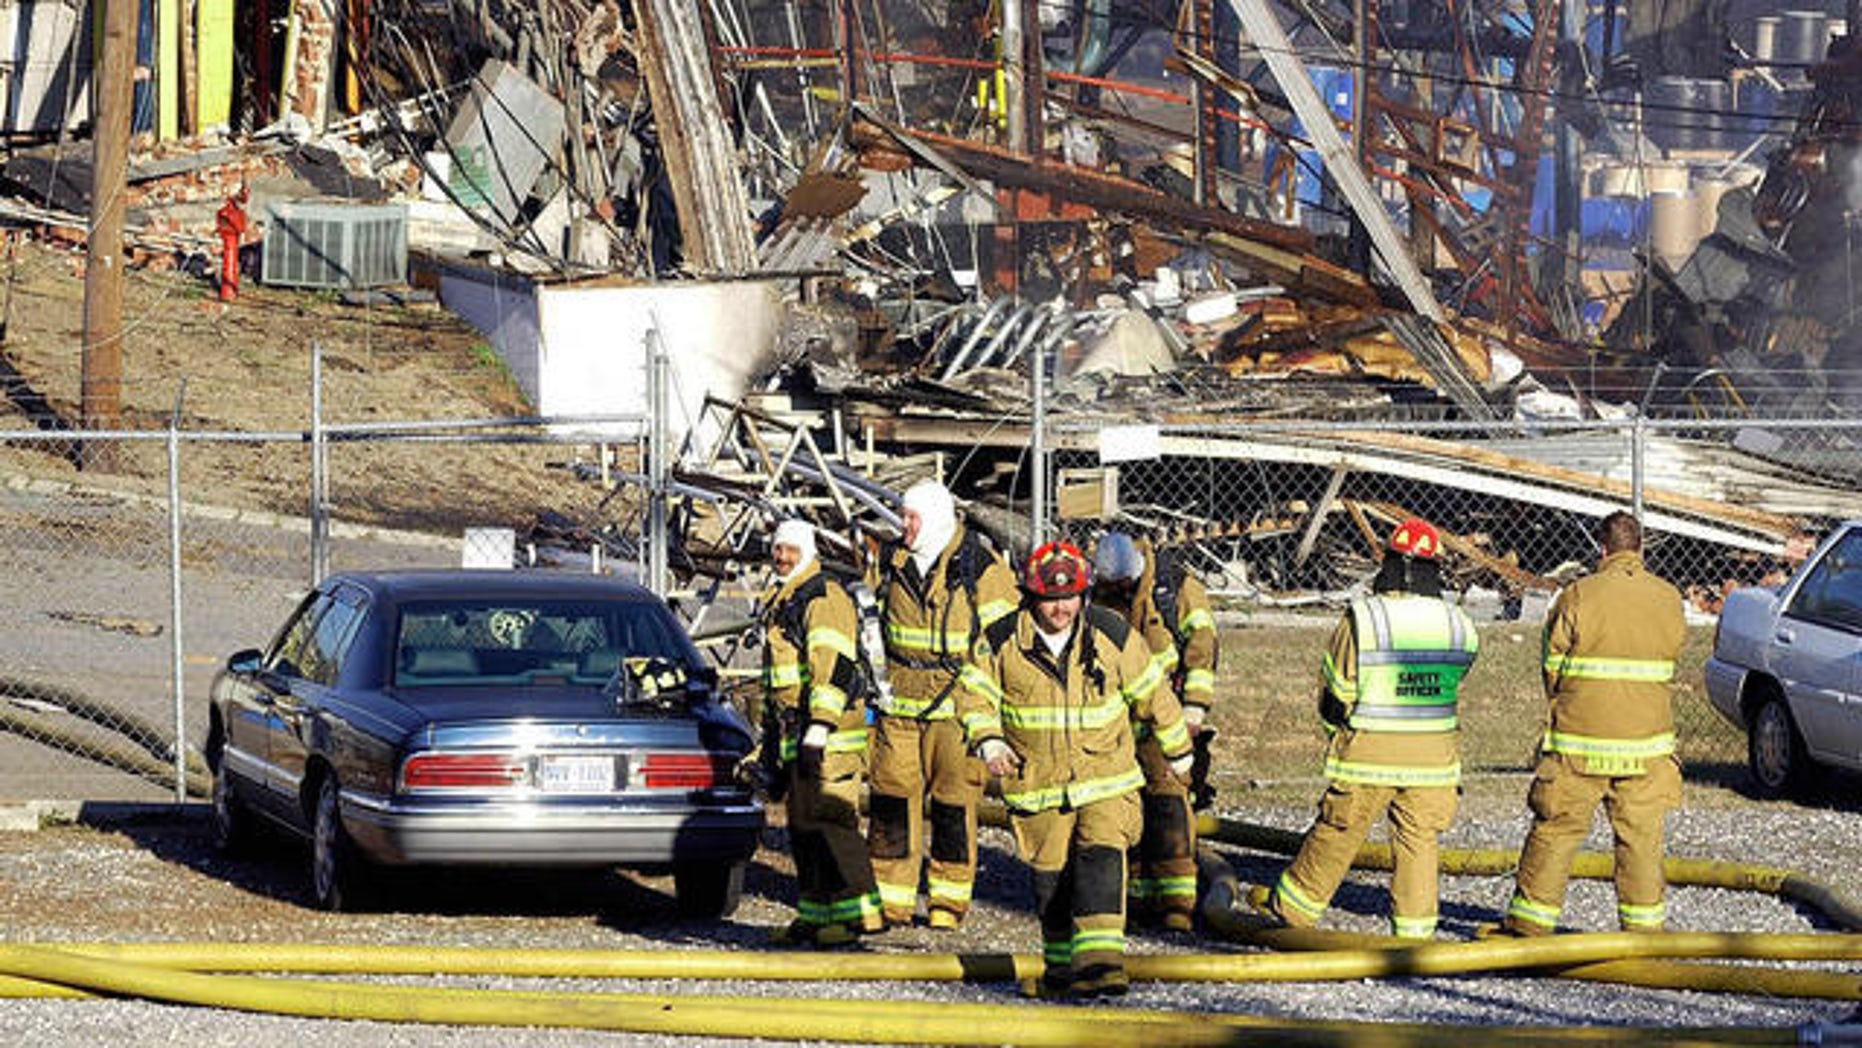 In this 2006 file photo, firefighters wait to go into a debris field at a chemical plant after an explosion and fire in Morganton, N.C.